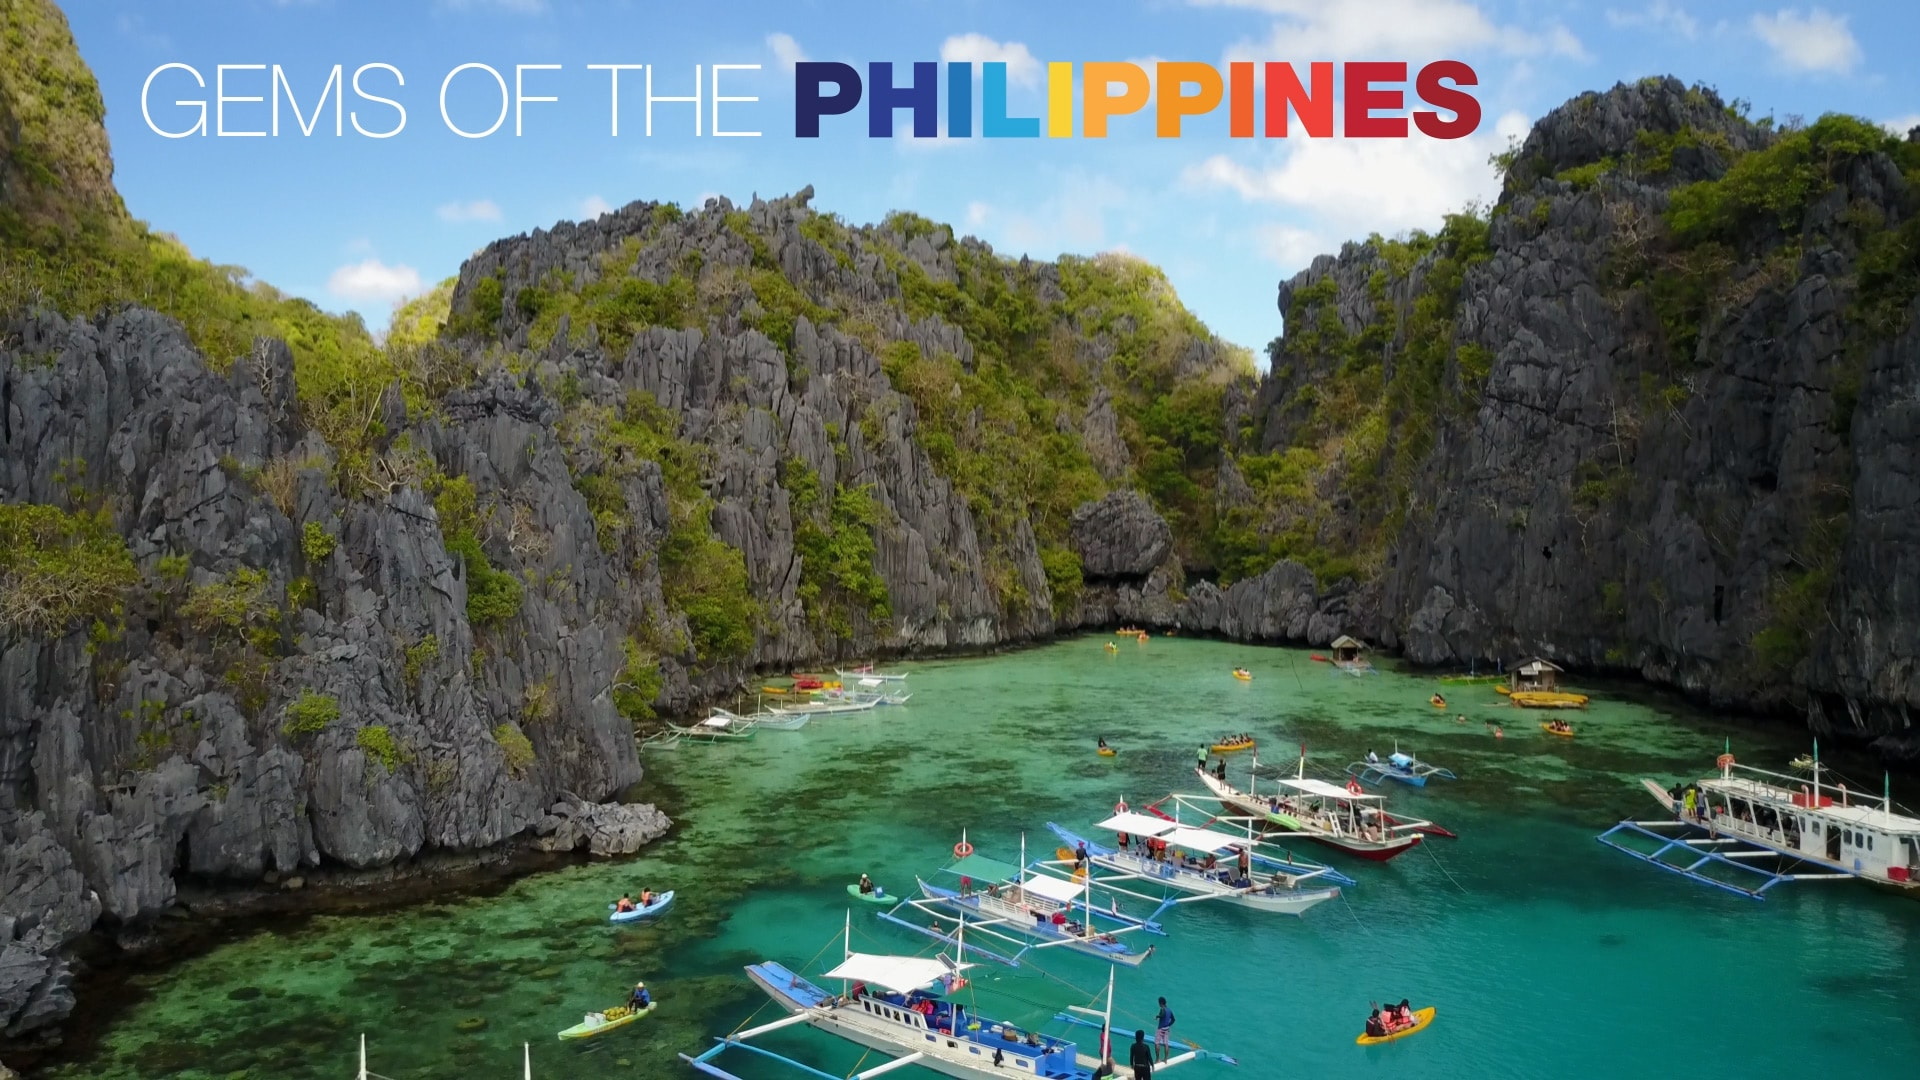 Gems of the Philippines, a timelapse & drone video of my favorite locations